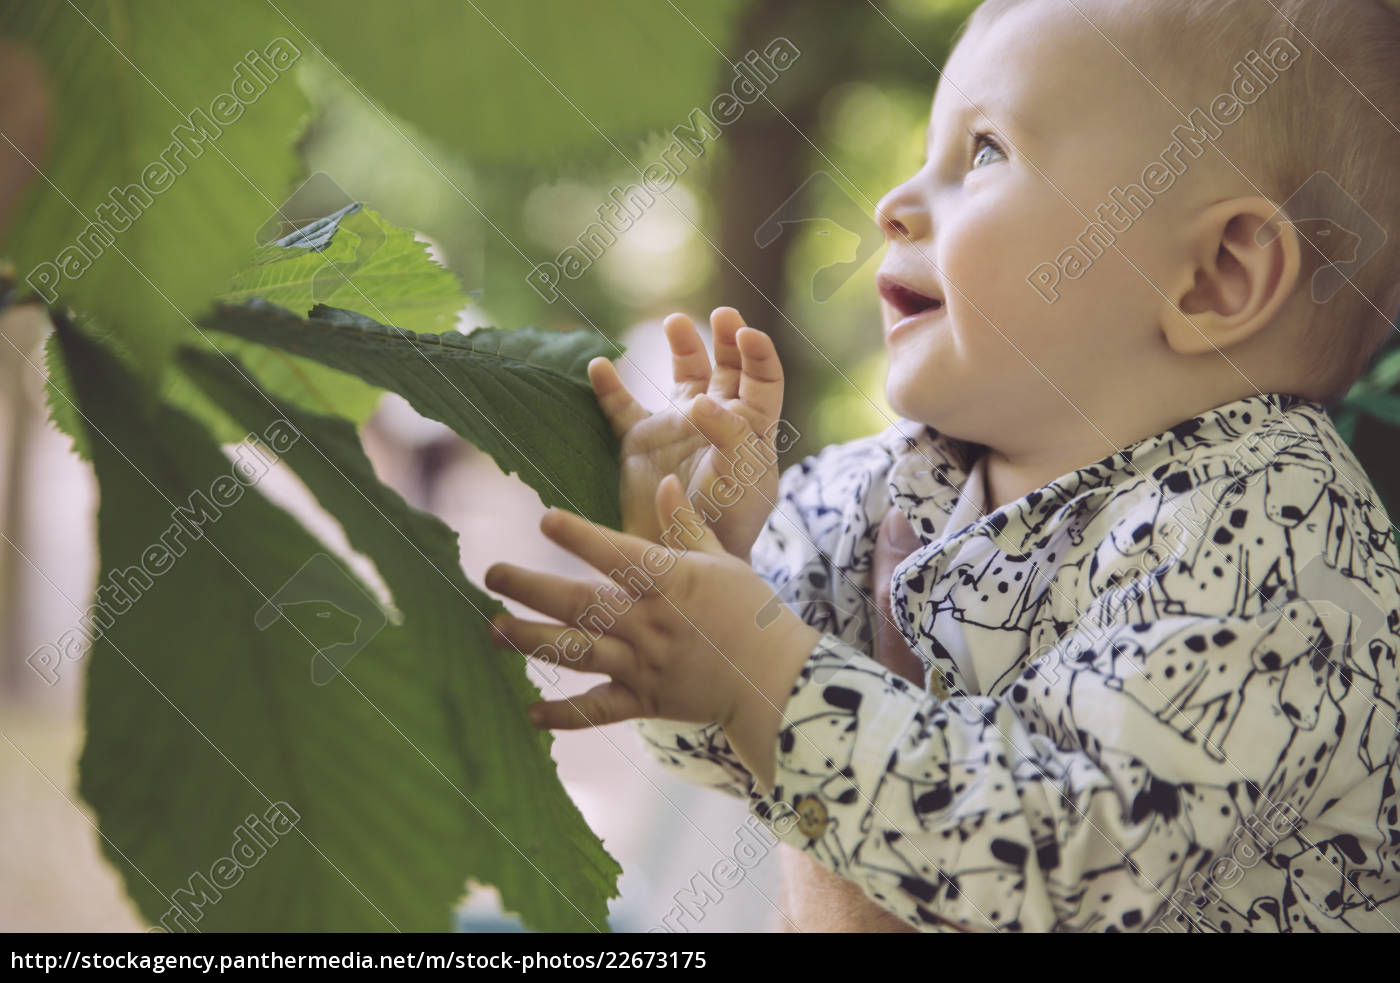 baby, touching, large, leaf, of, chestnut - 22673175